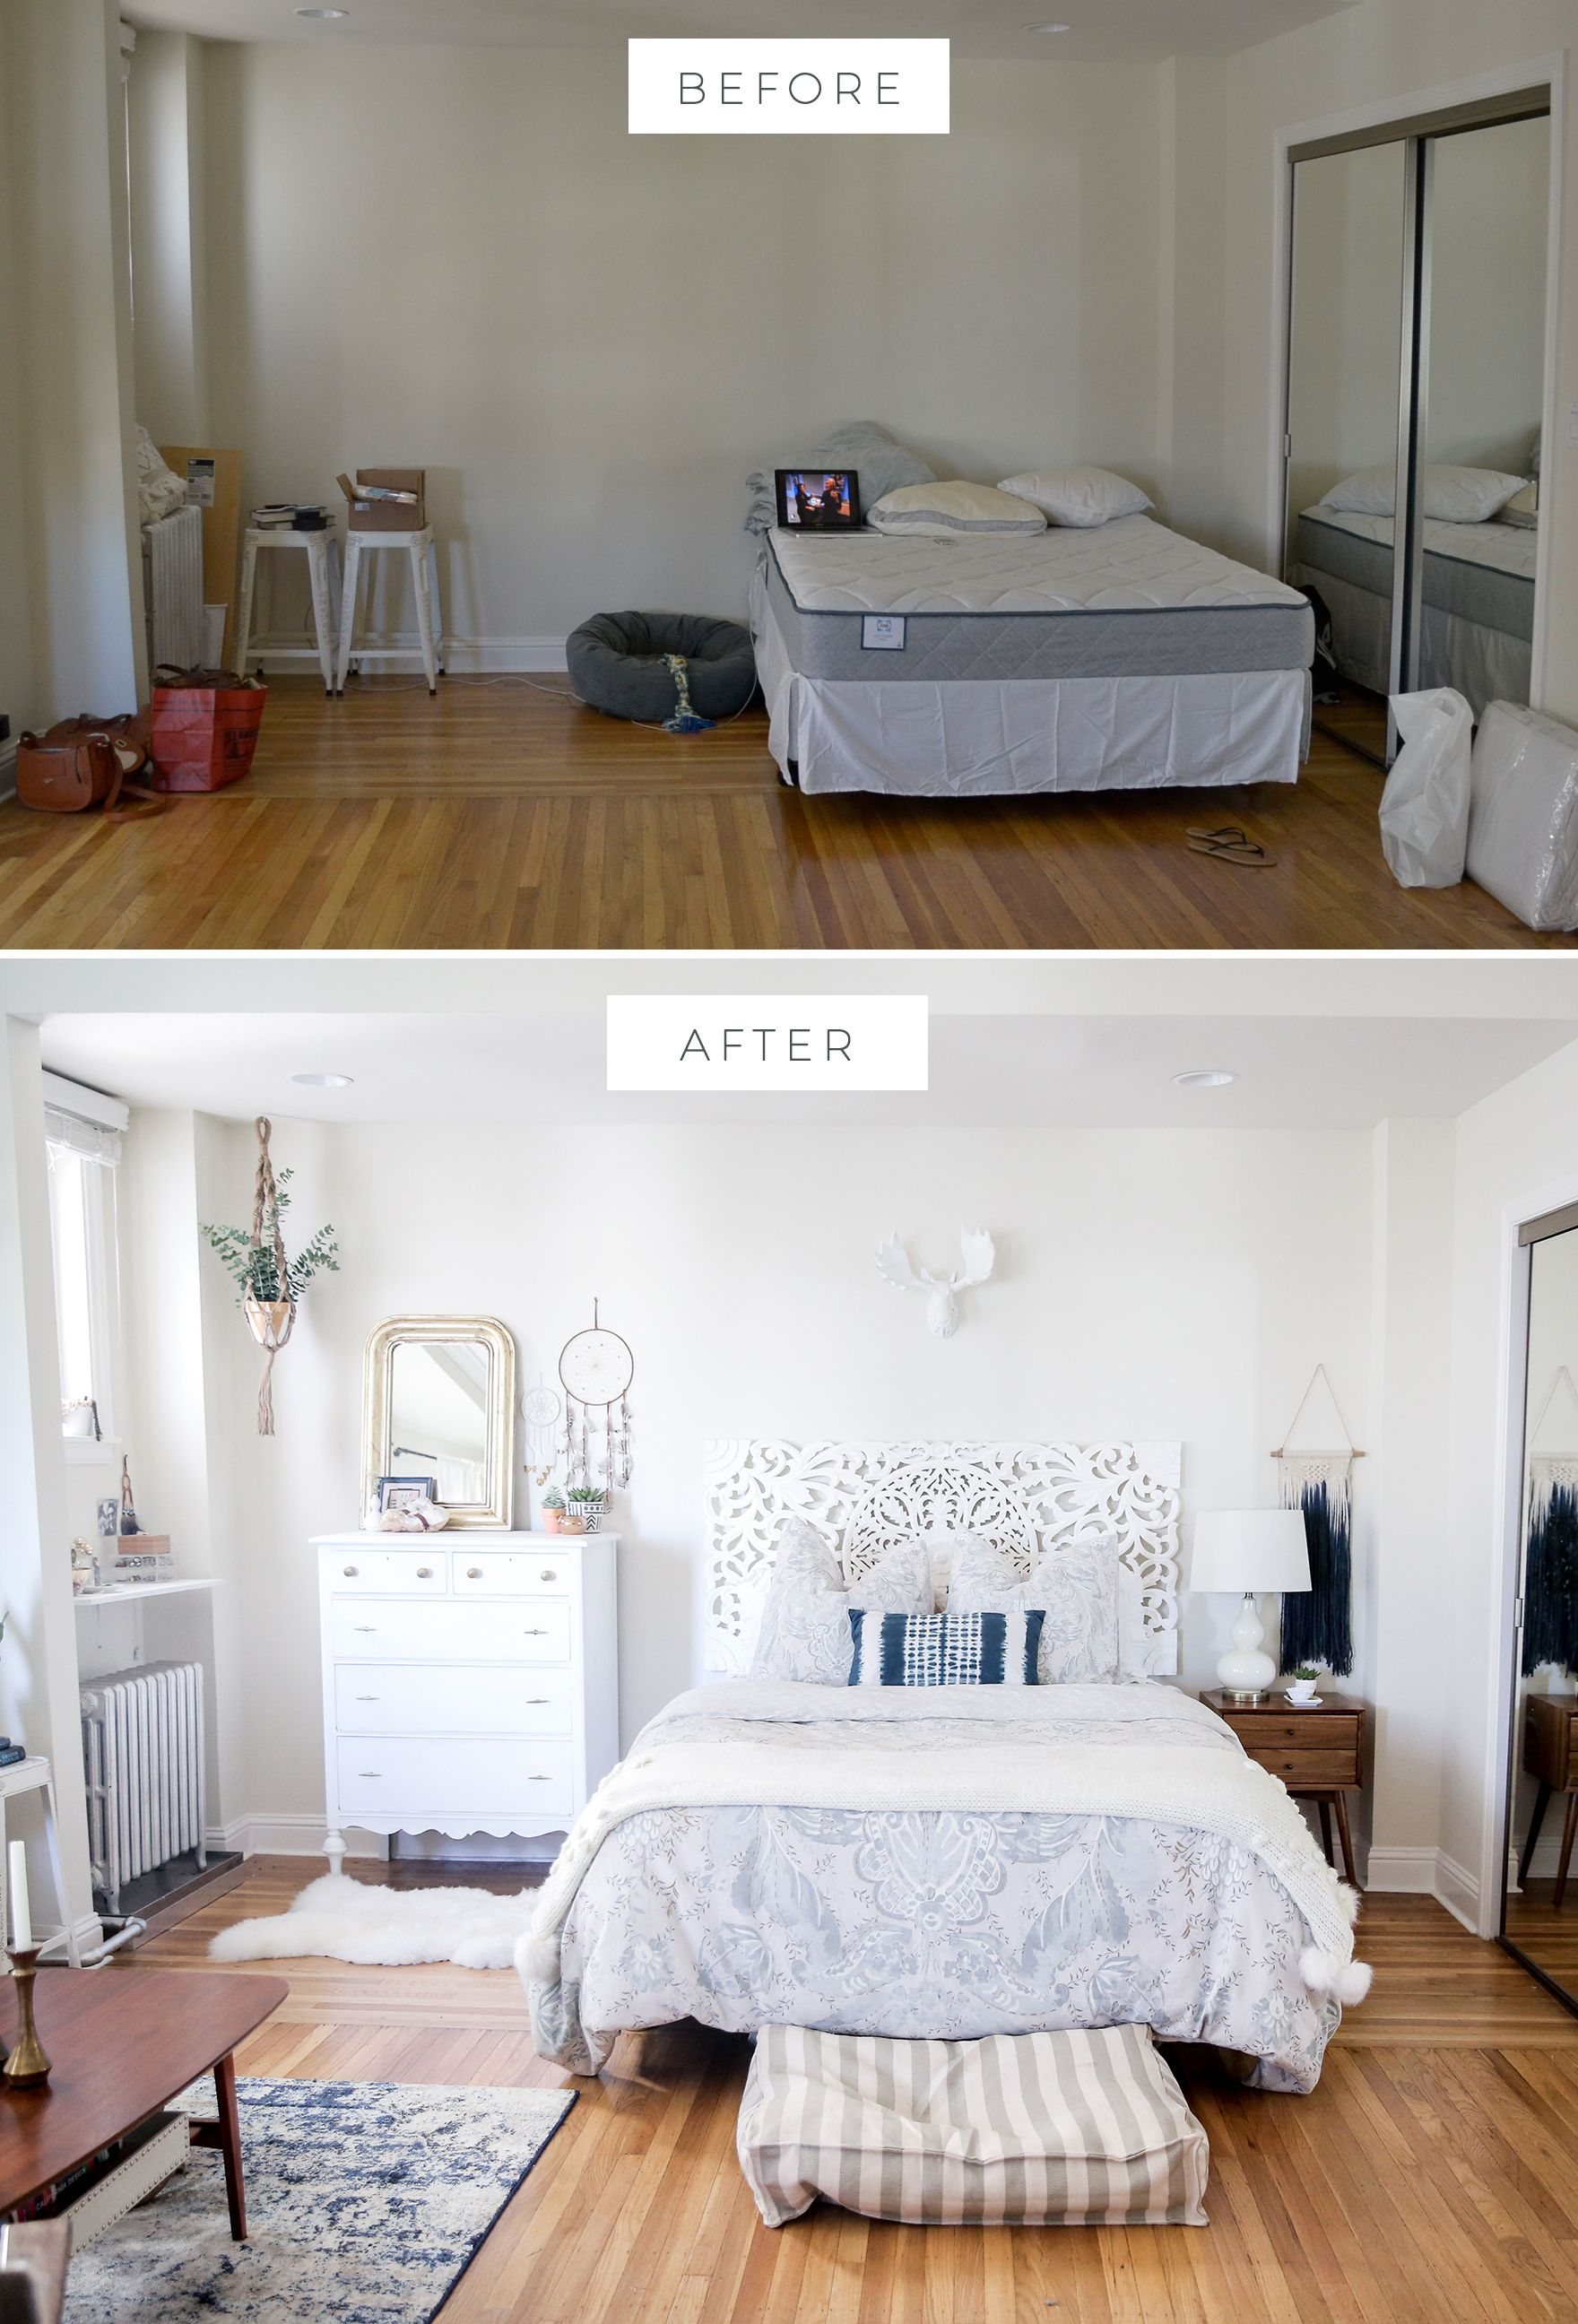 Bedroom Before And After Makeover Boho Bohemian Light